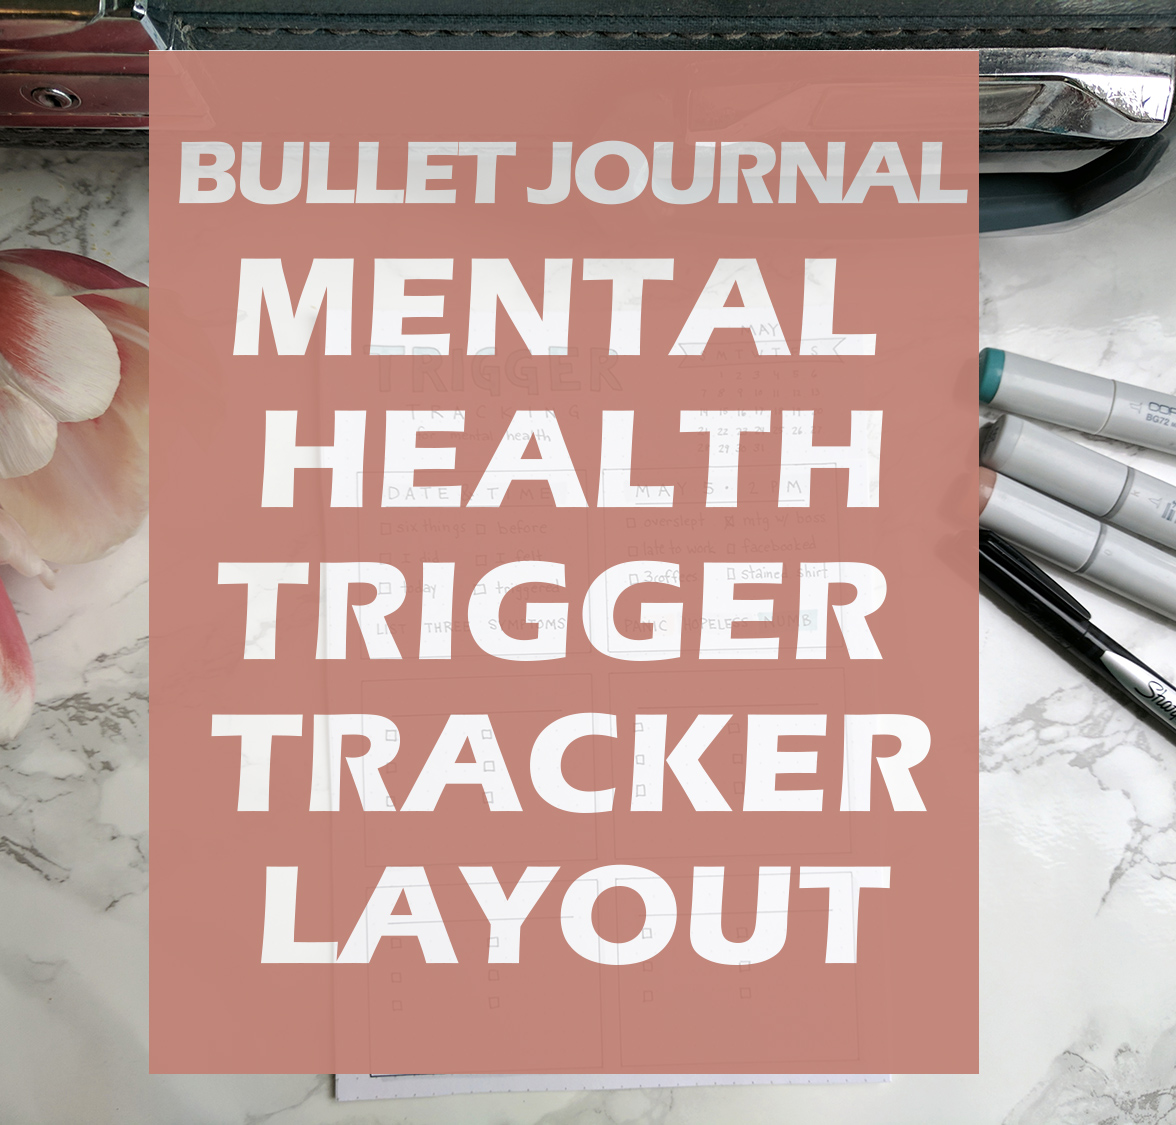 Minimalist Bullet Journal Layout - Mental health trigger tracking